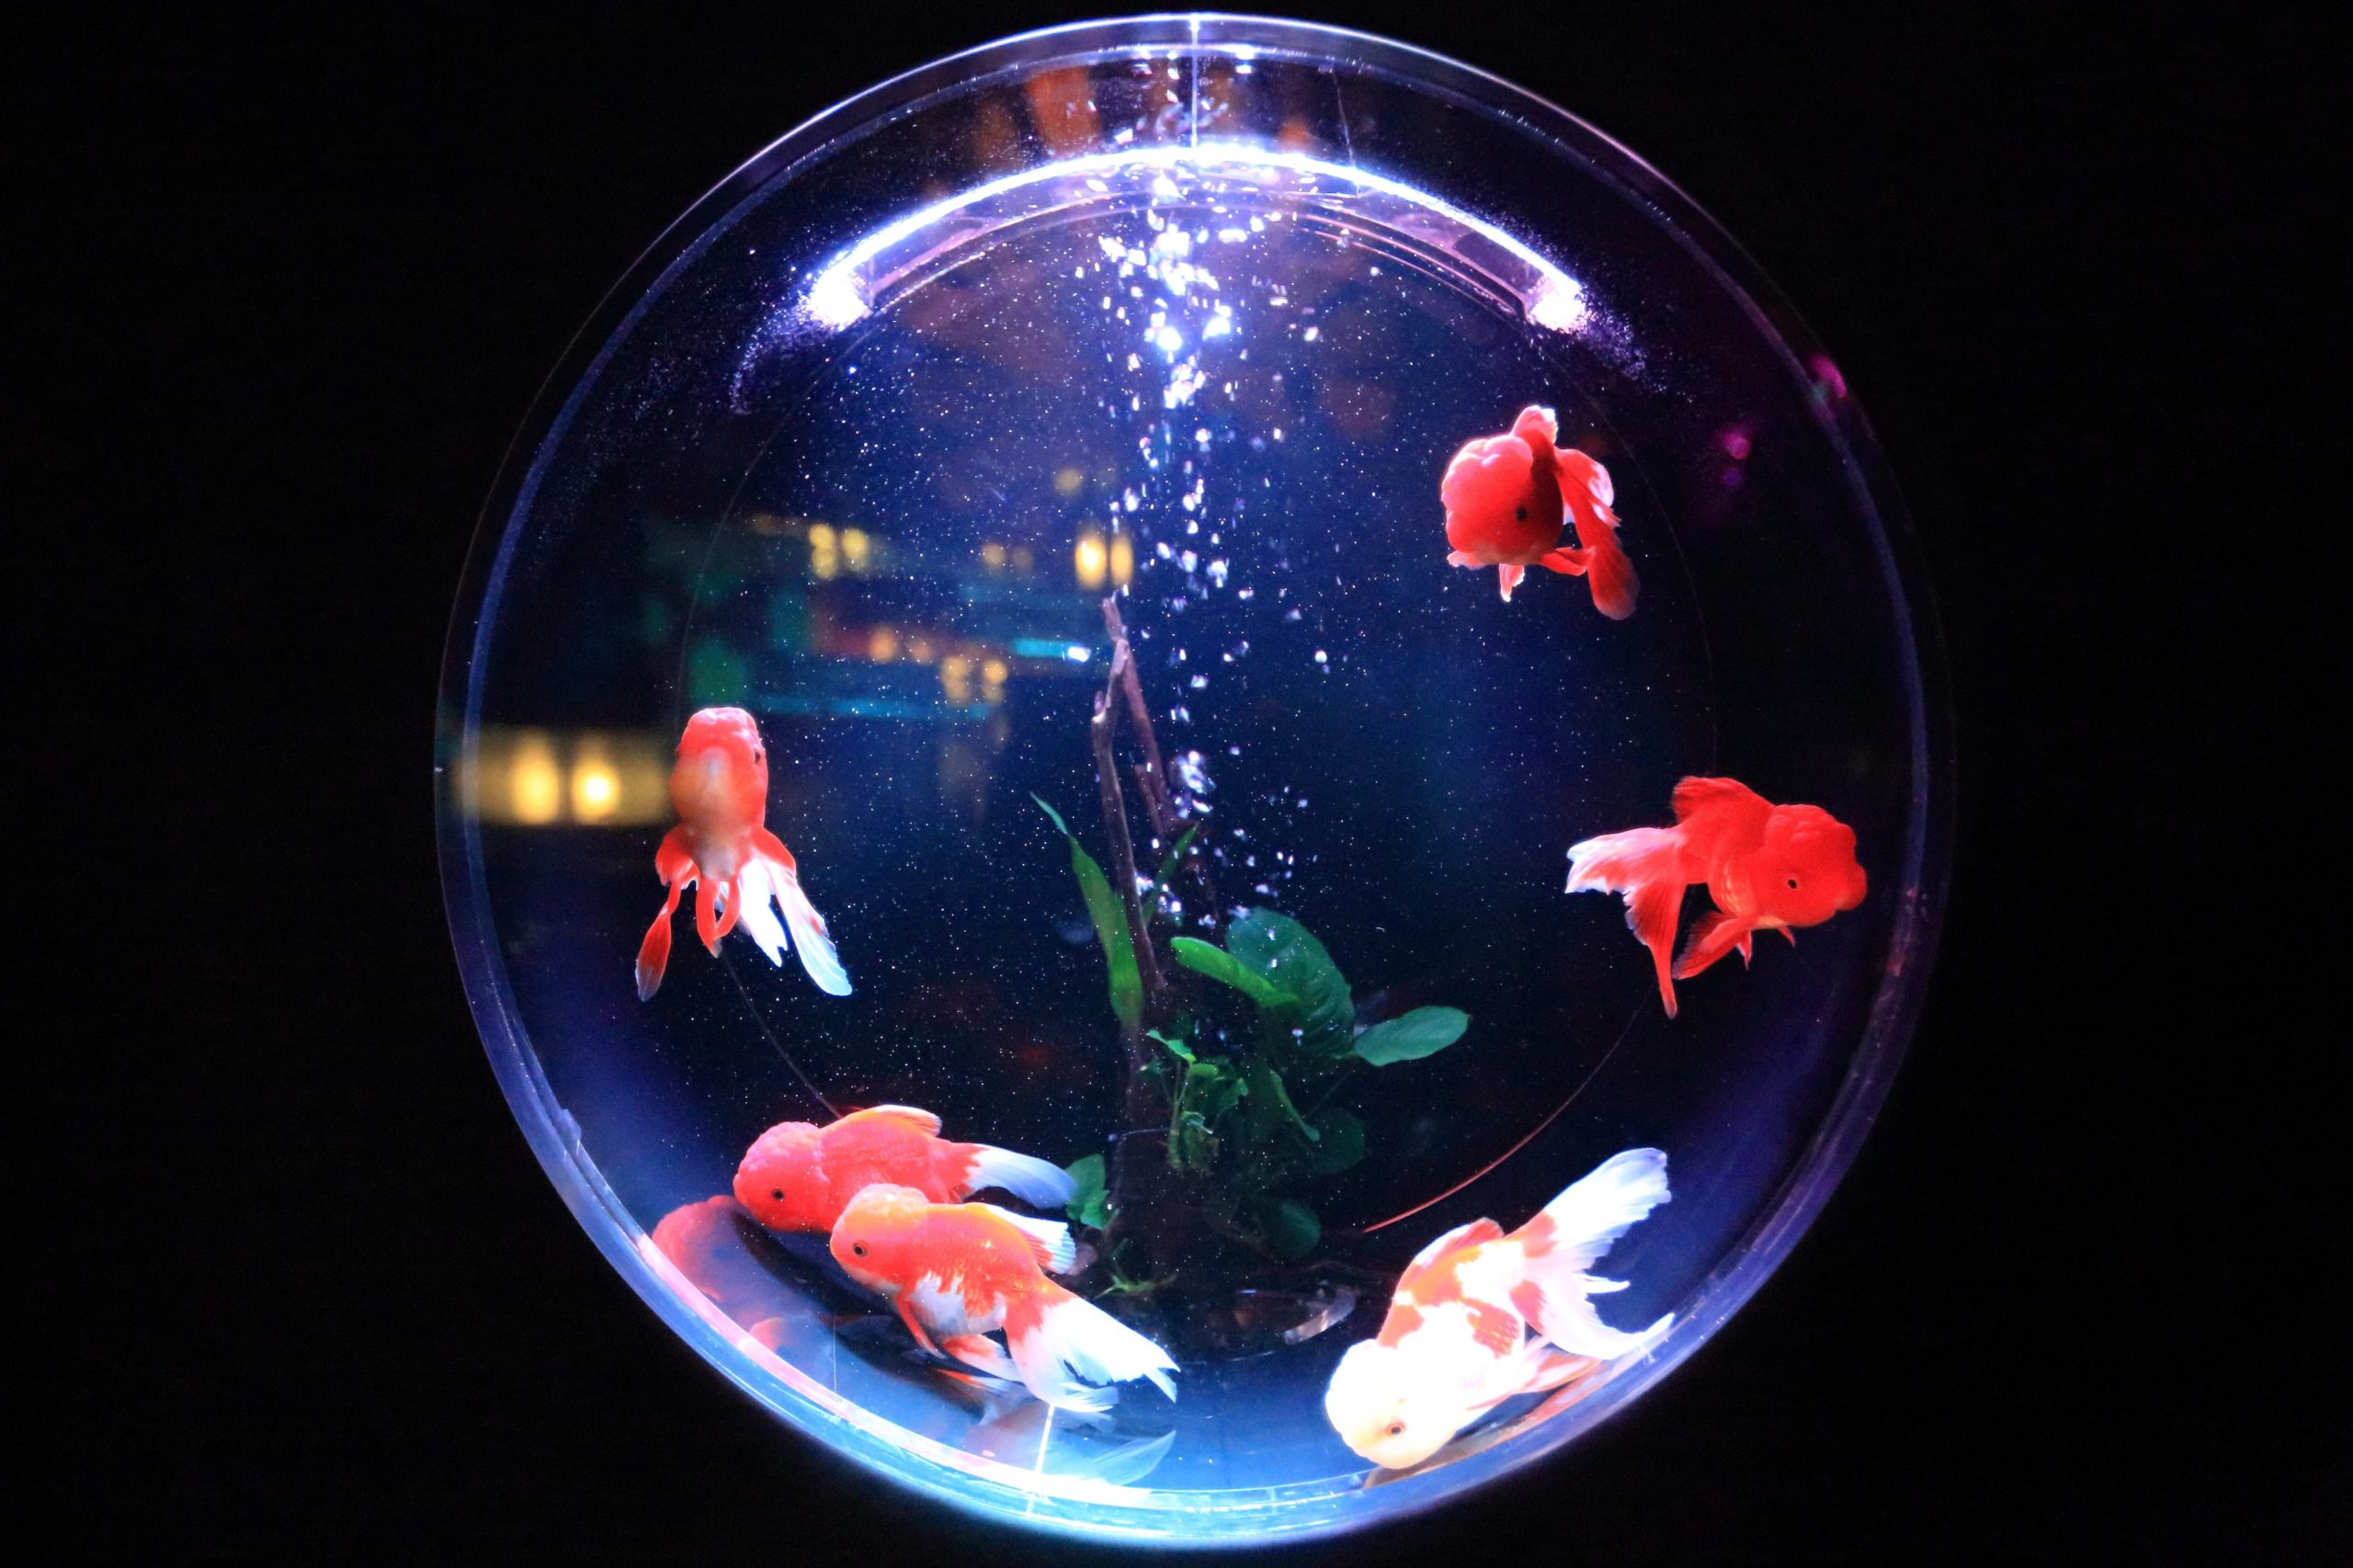 Things To Consider While Shopping For Aquarium Décor